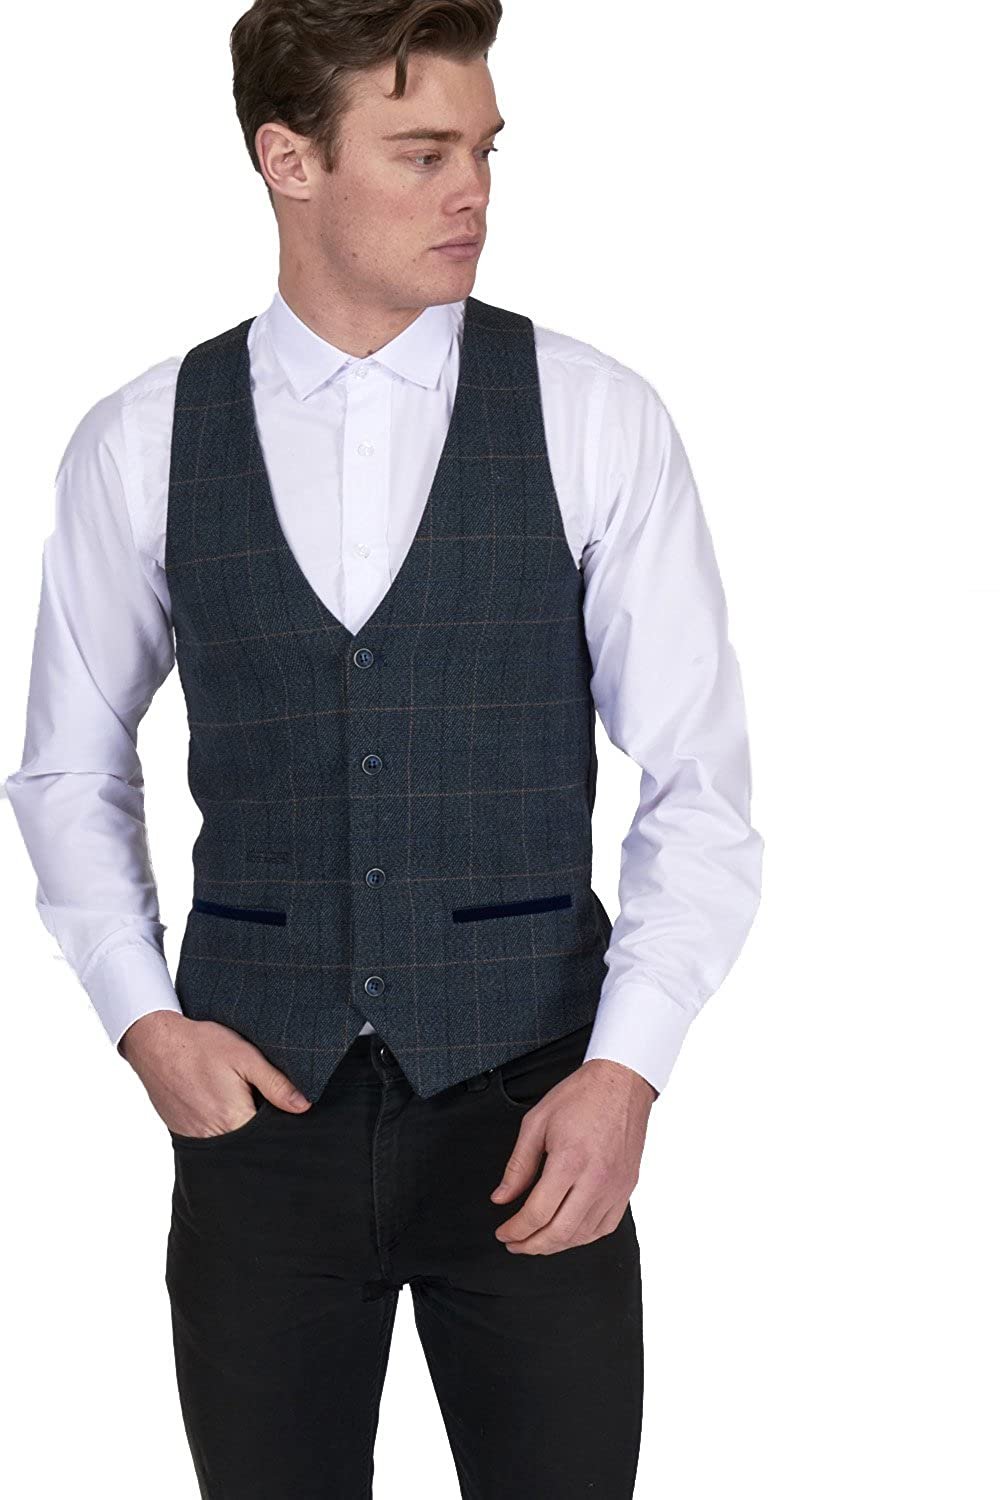 ca58fe4e35ff Marc Darcy Men's Multi Tonal Check Tweed Blazer/Waistcoat in Blue:  Amazon.co.uk: Clothing